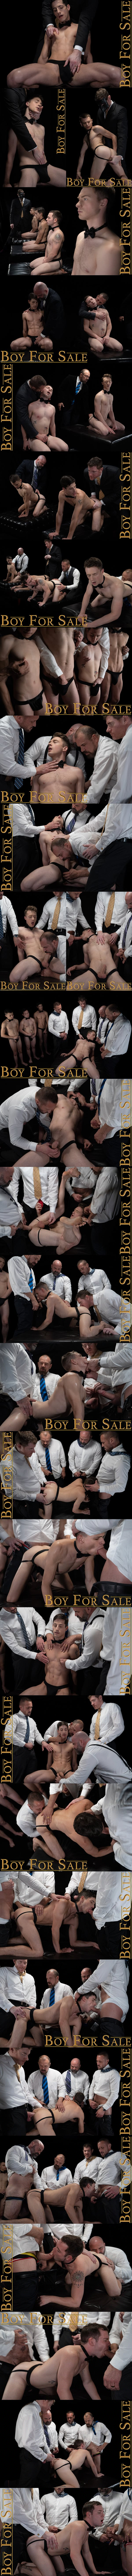 LeGrand Wolf, Bishop Angus, Master Ballard (aka Max Sargent) and Master Myles (aka Myles Landon) bareback Jay James, Austin L Young, Cole Blue and Danny in an older younger orgy at Boyforsale 01